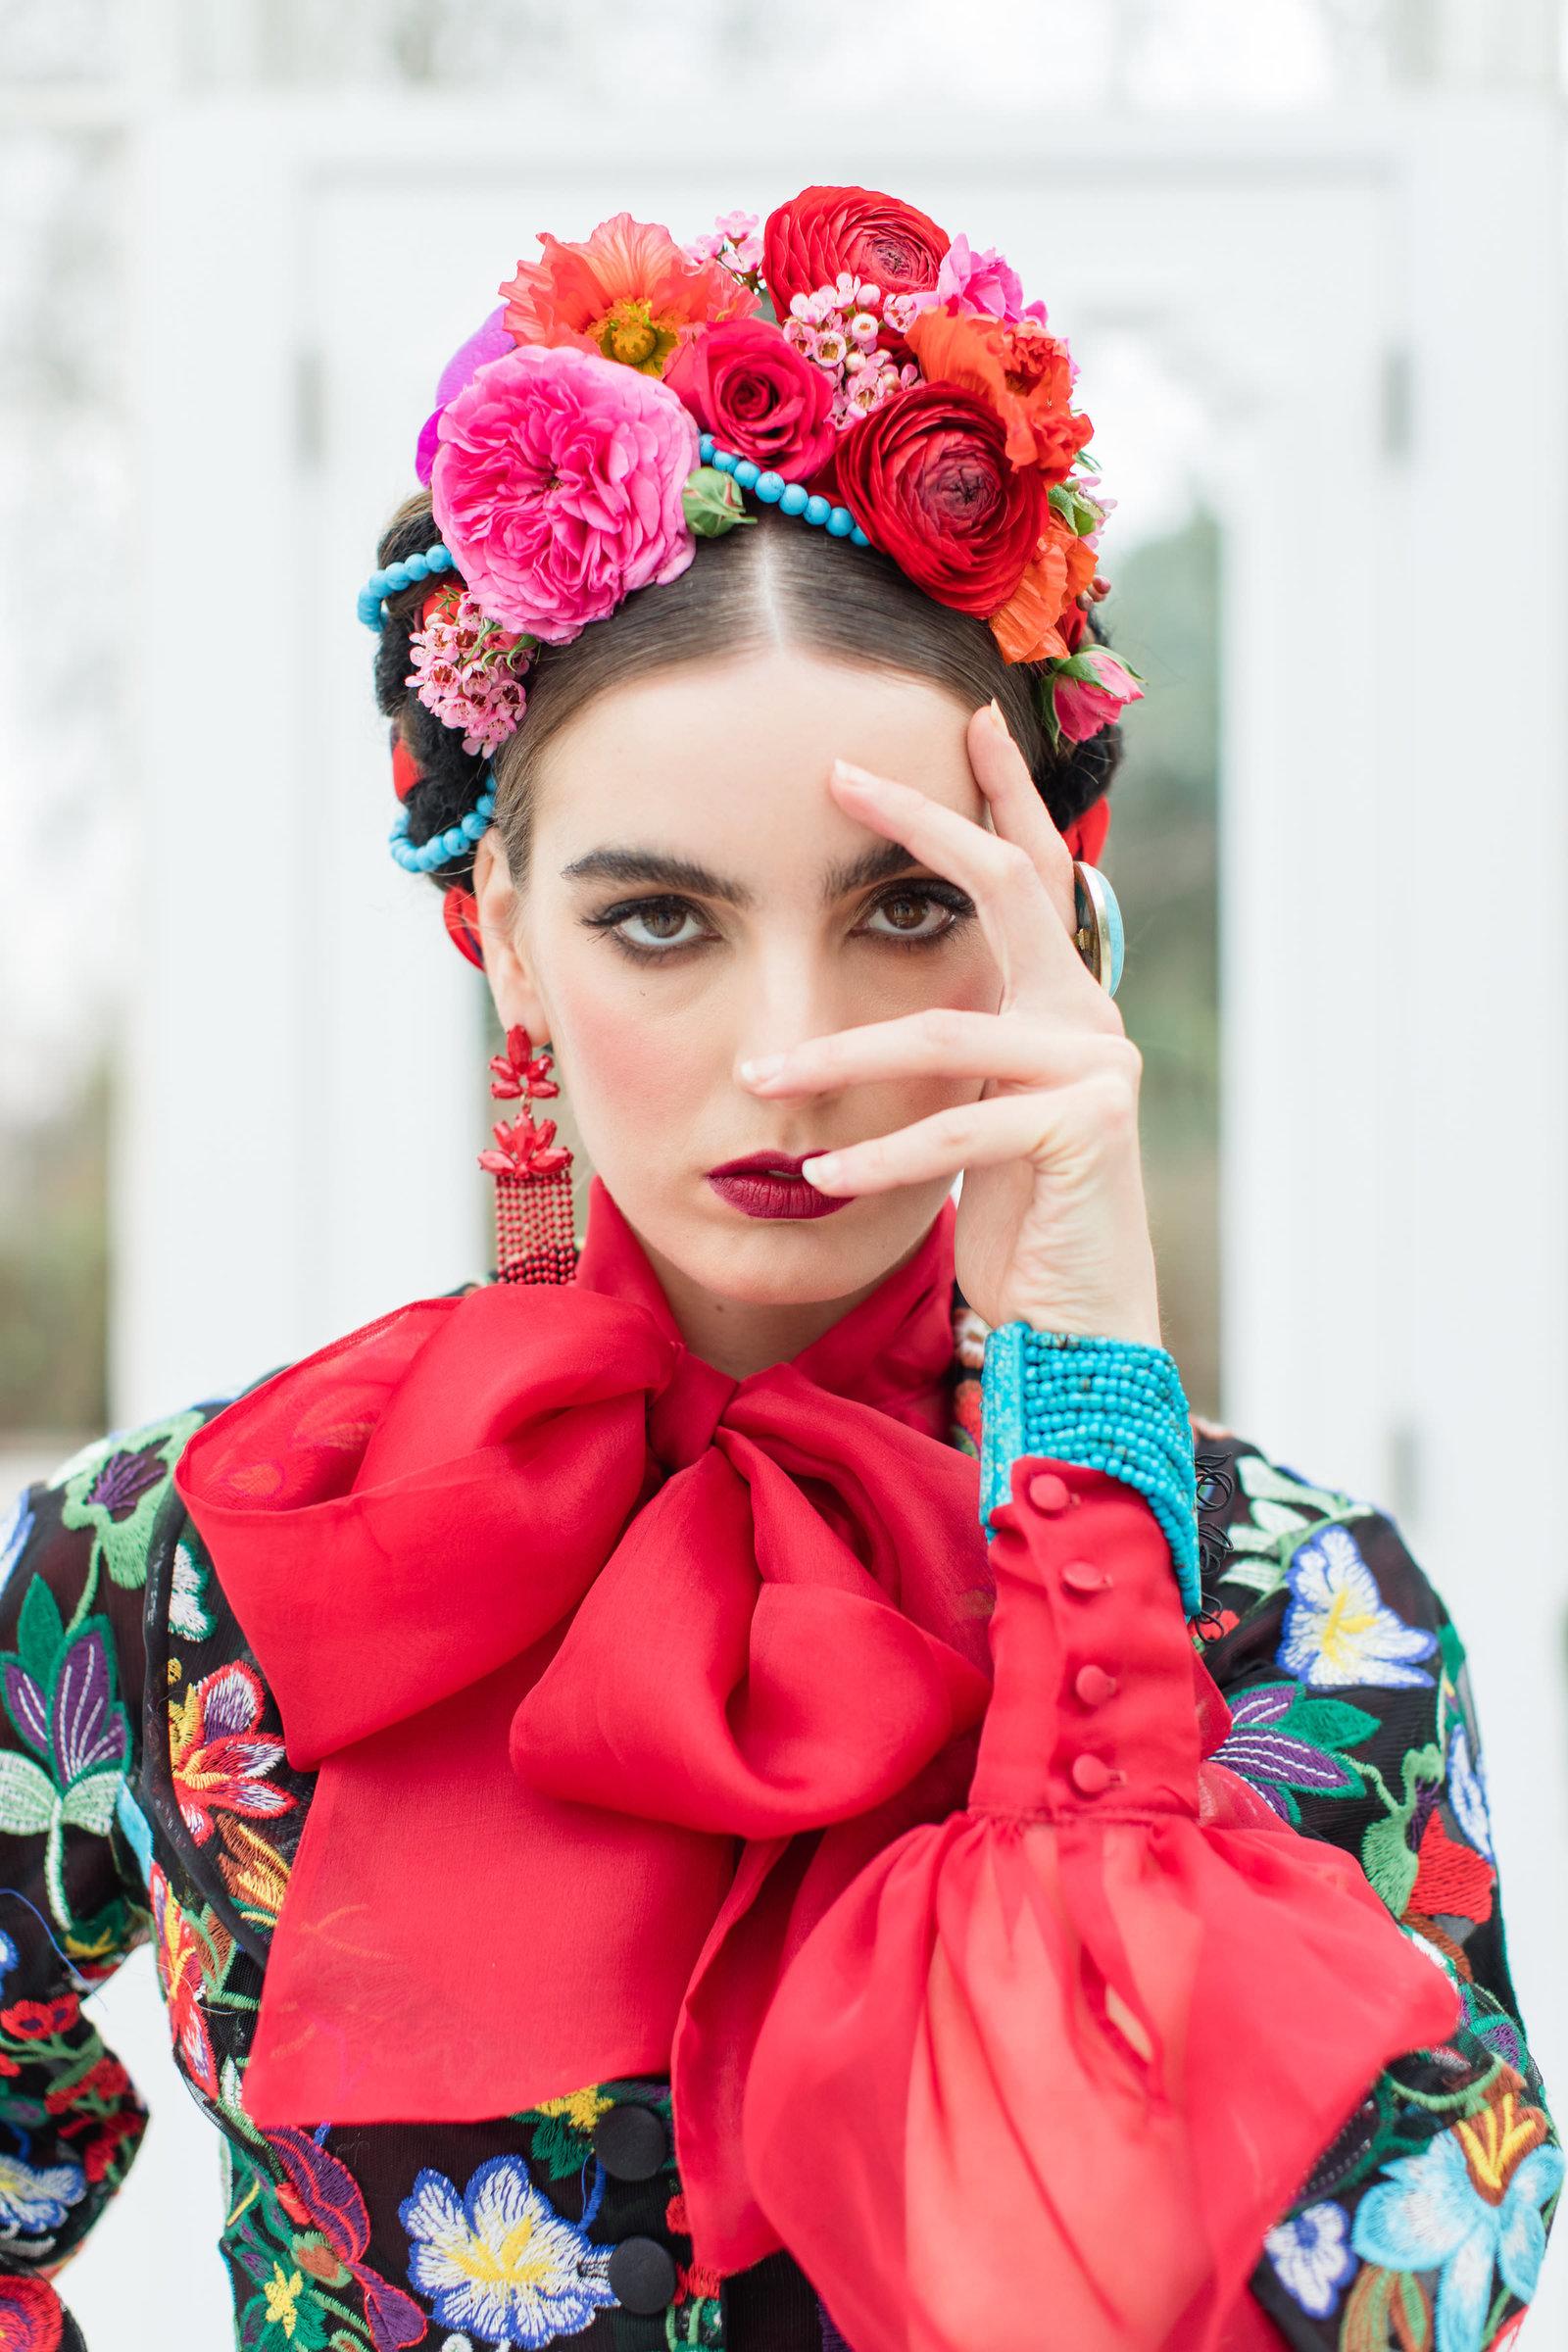 Frida-Kahlo-inspired-Mariachi-embroidered-flower-jacket-JoanneFlemingDesign-RobertaFacchiniPhoto (1)